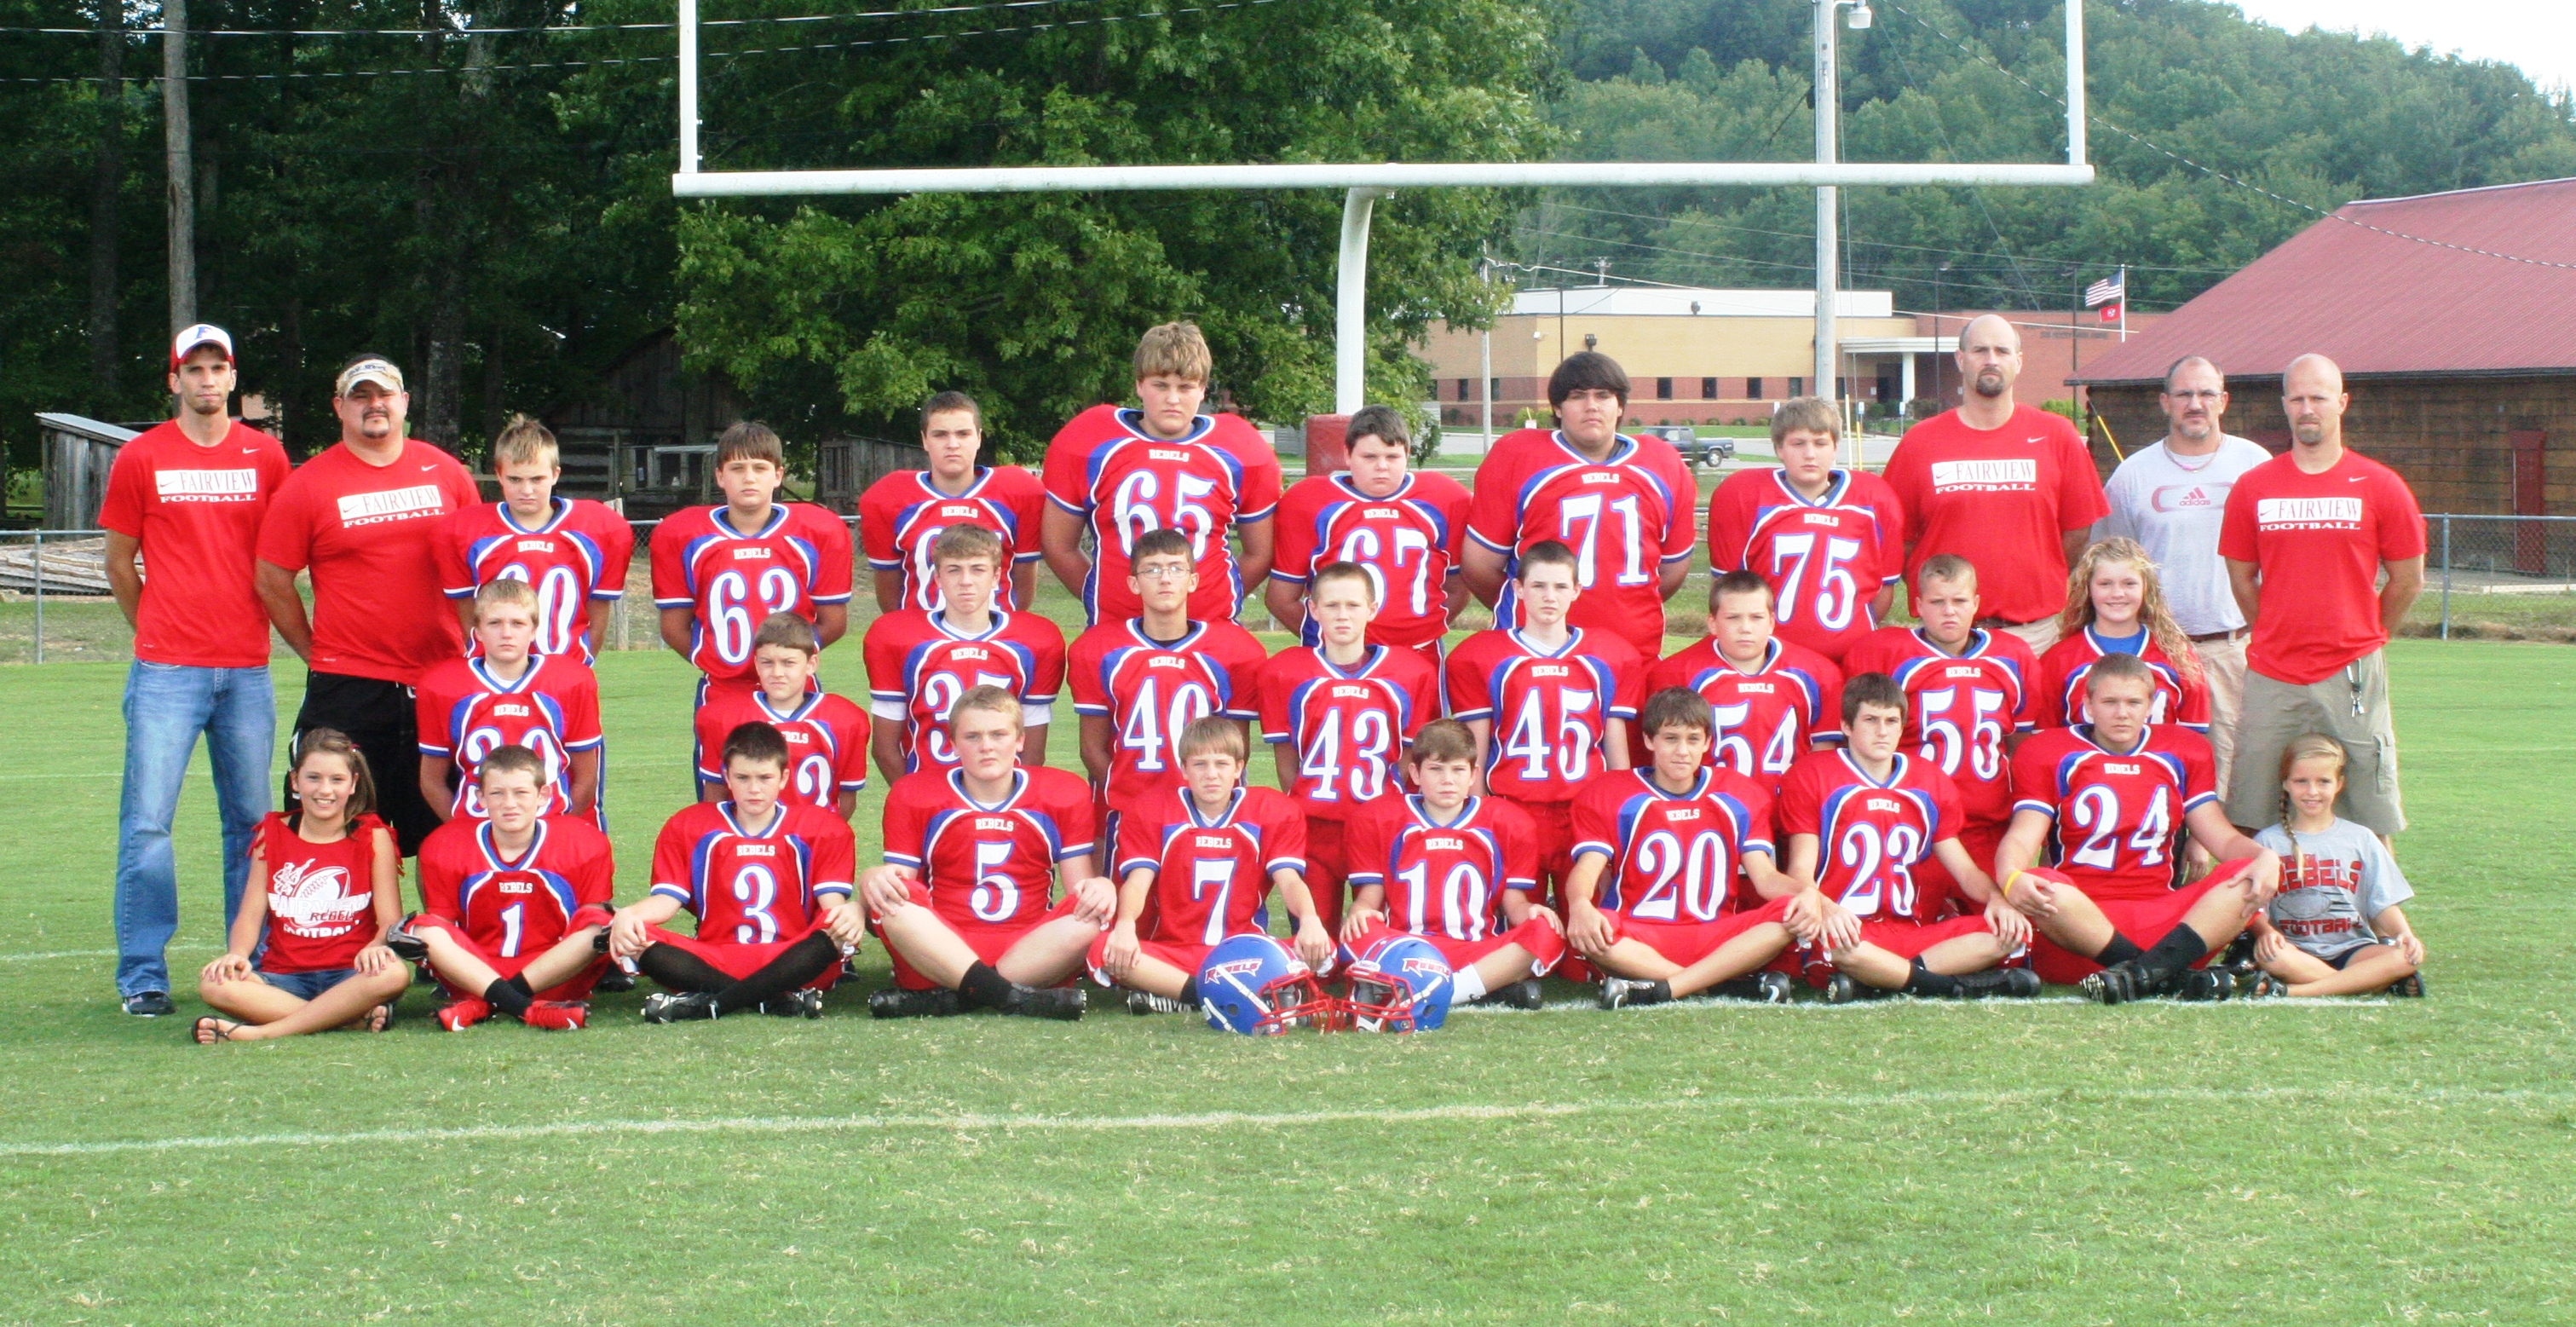 2012-2013 Fairview Rebels.JPG